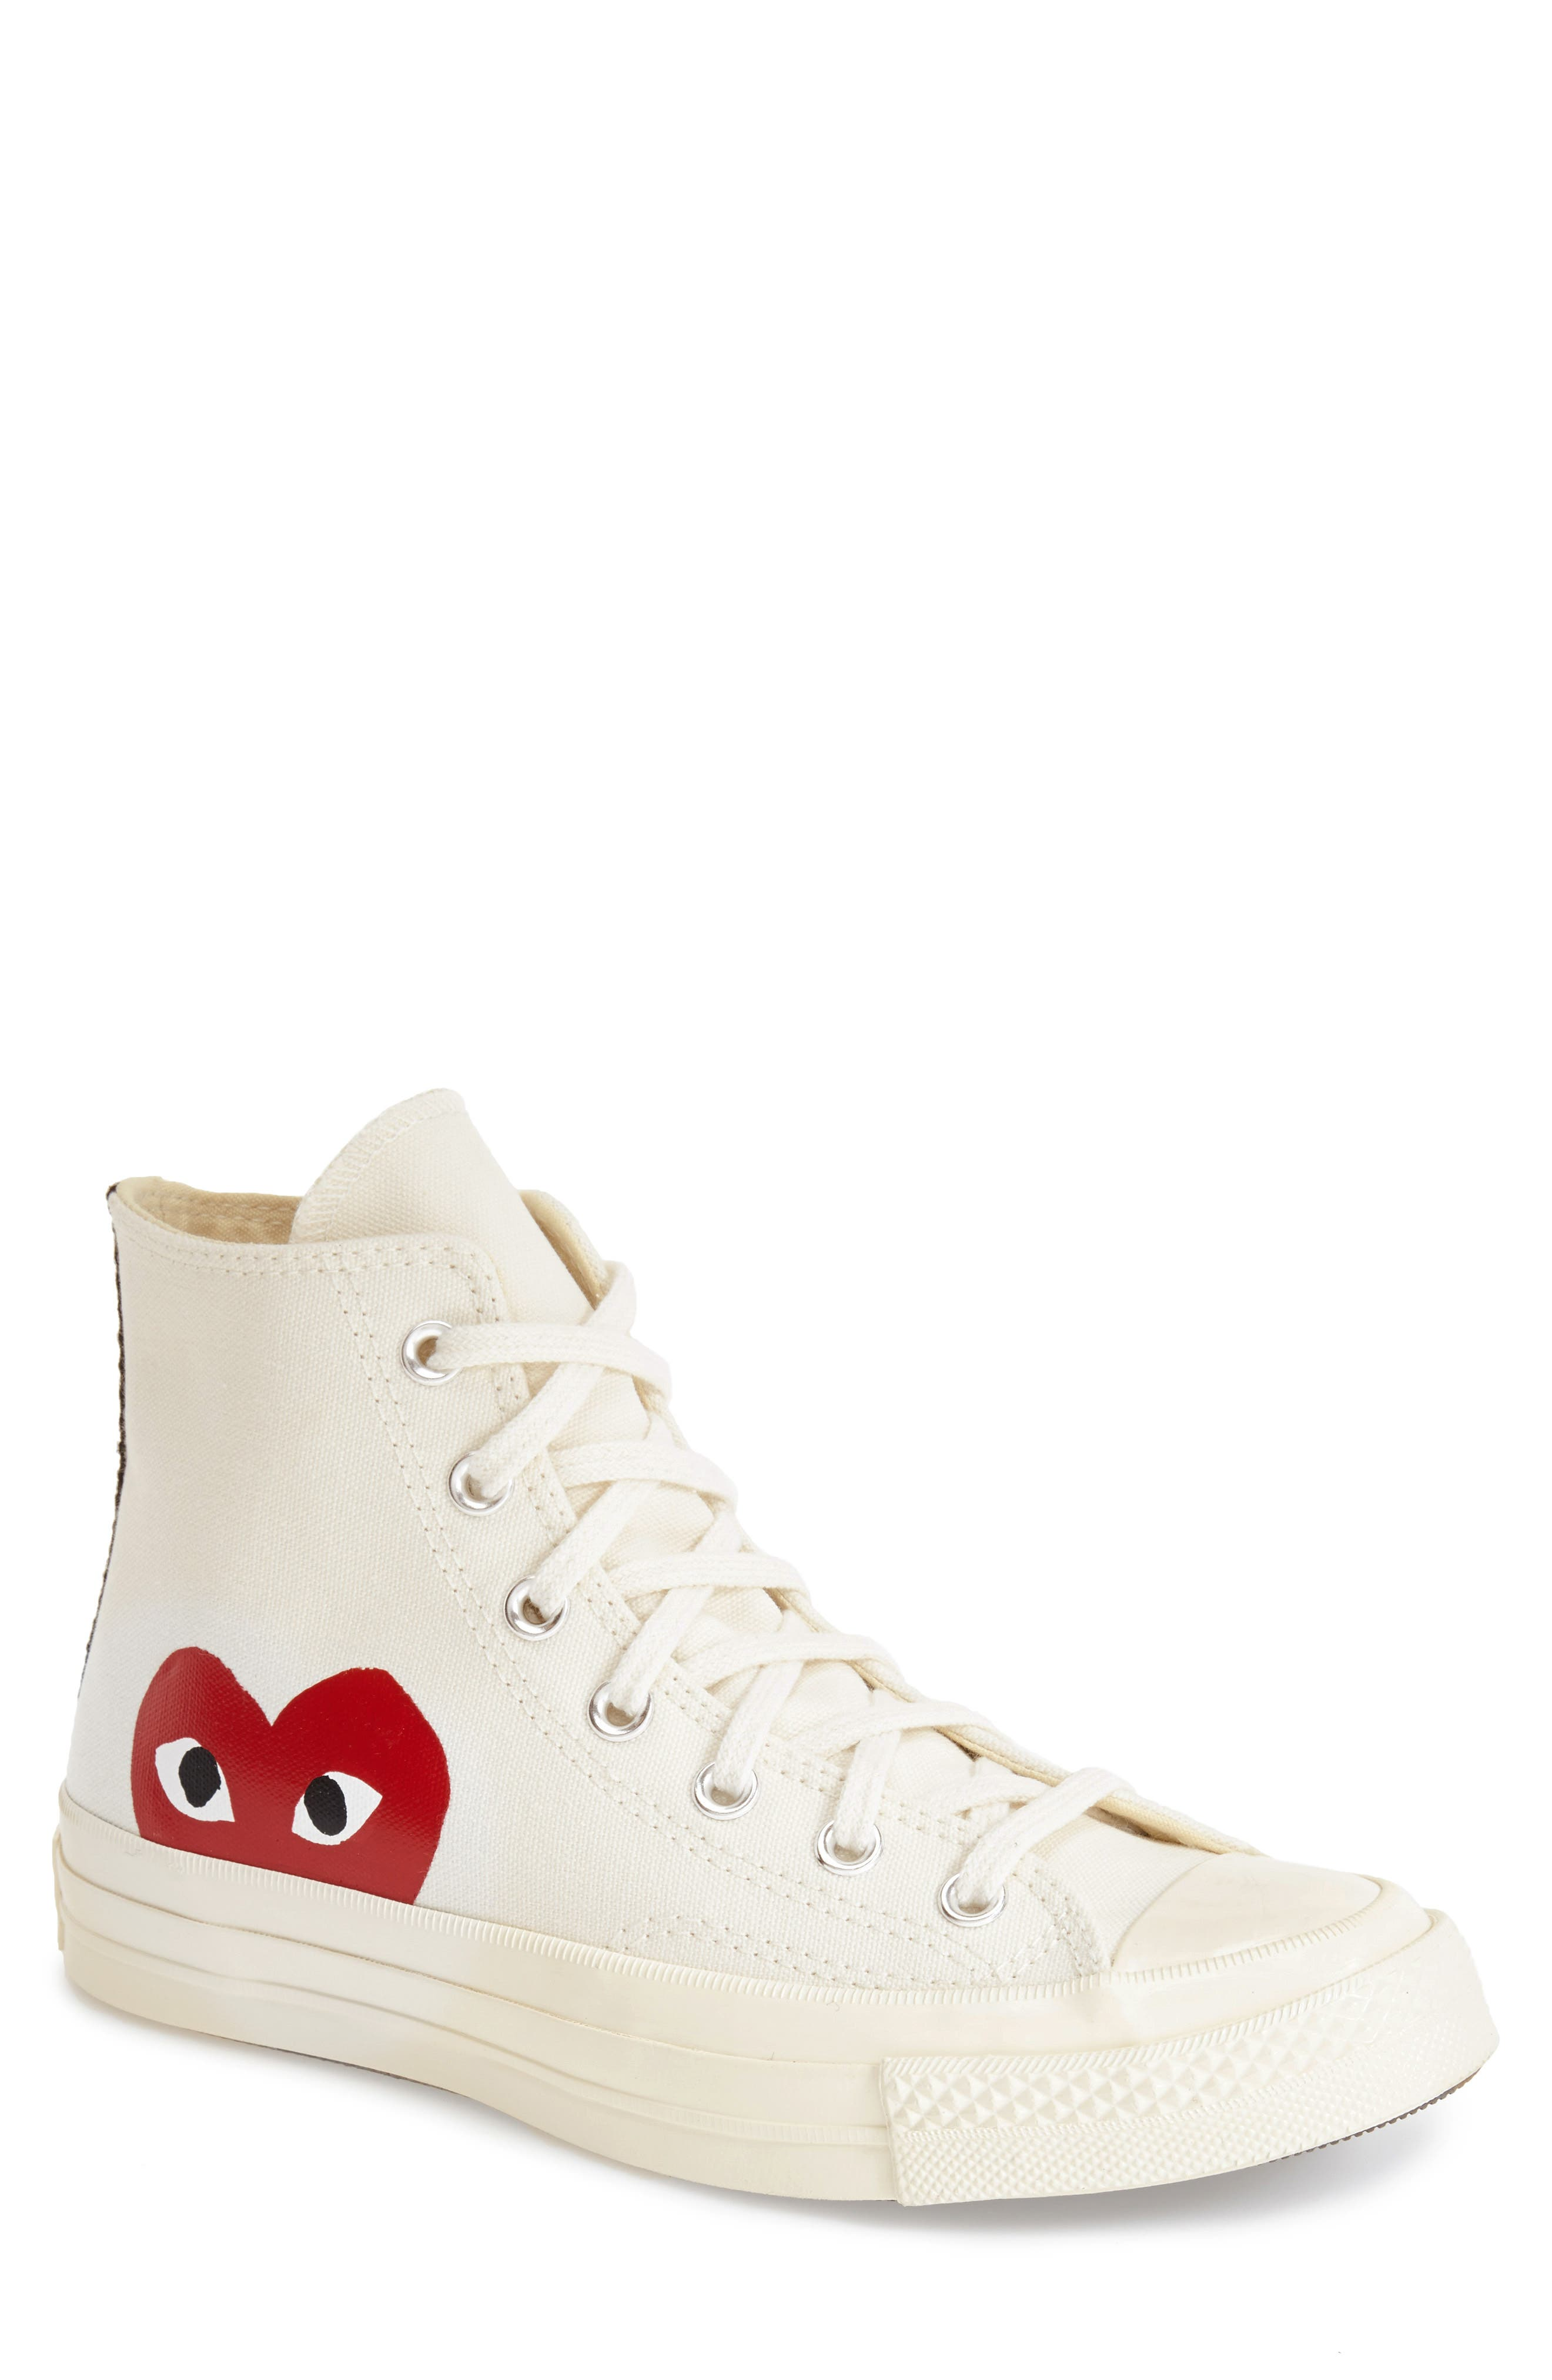 COMME DES GARÇONS PLAY x Converse Chuck Taylor<sup>®</sup> Hidden Heart High Top Sneaker, Main, color, WHITE CANVAS